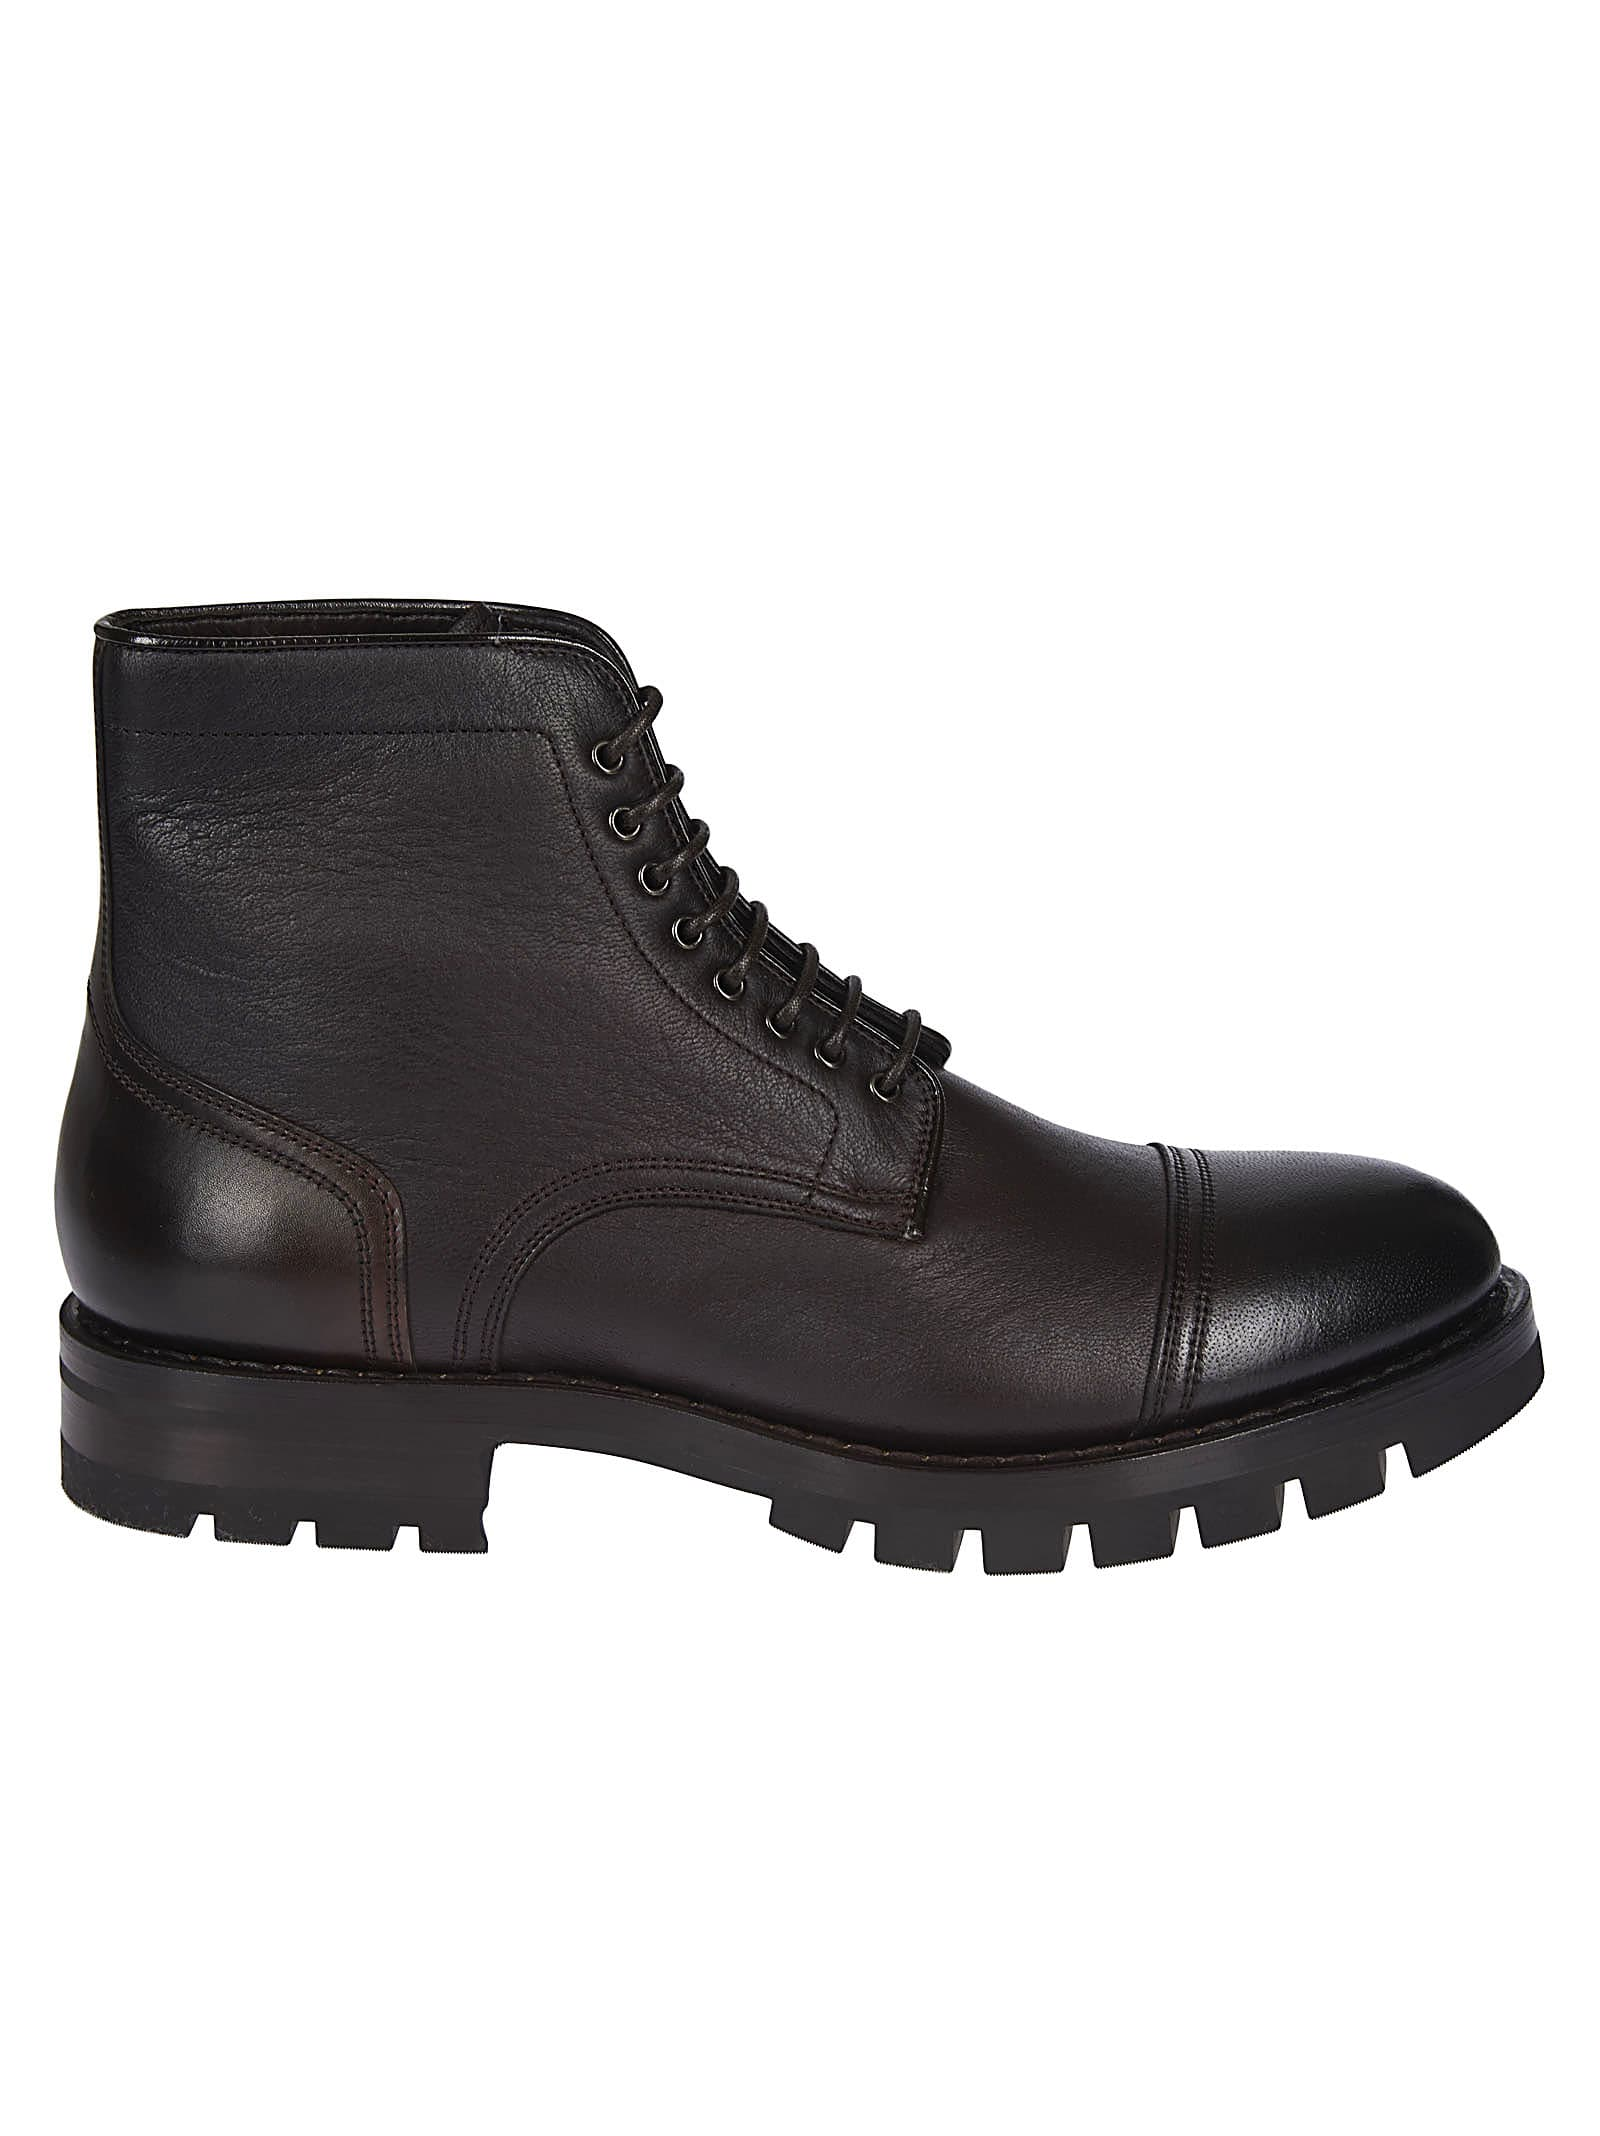 Santoni Classic Laced-up Boots